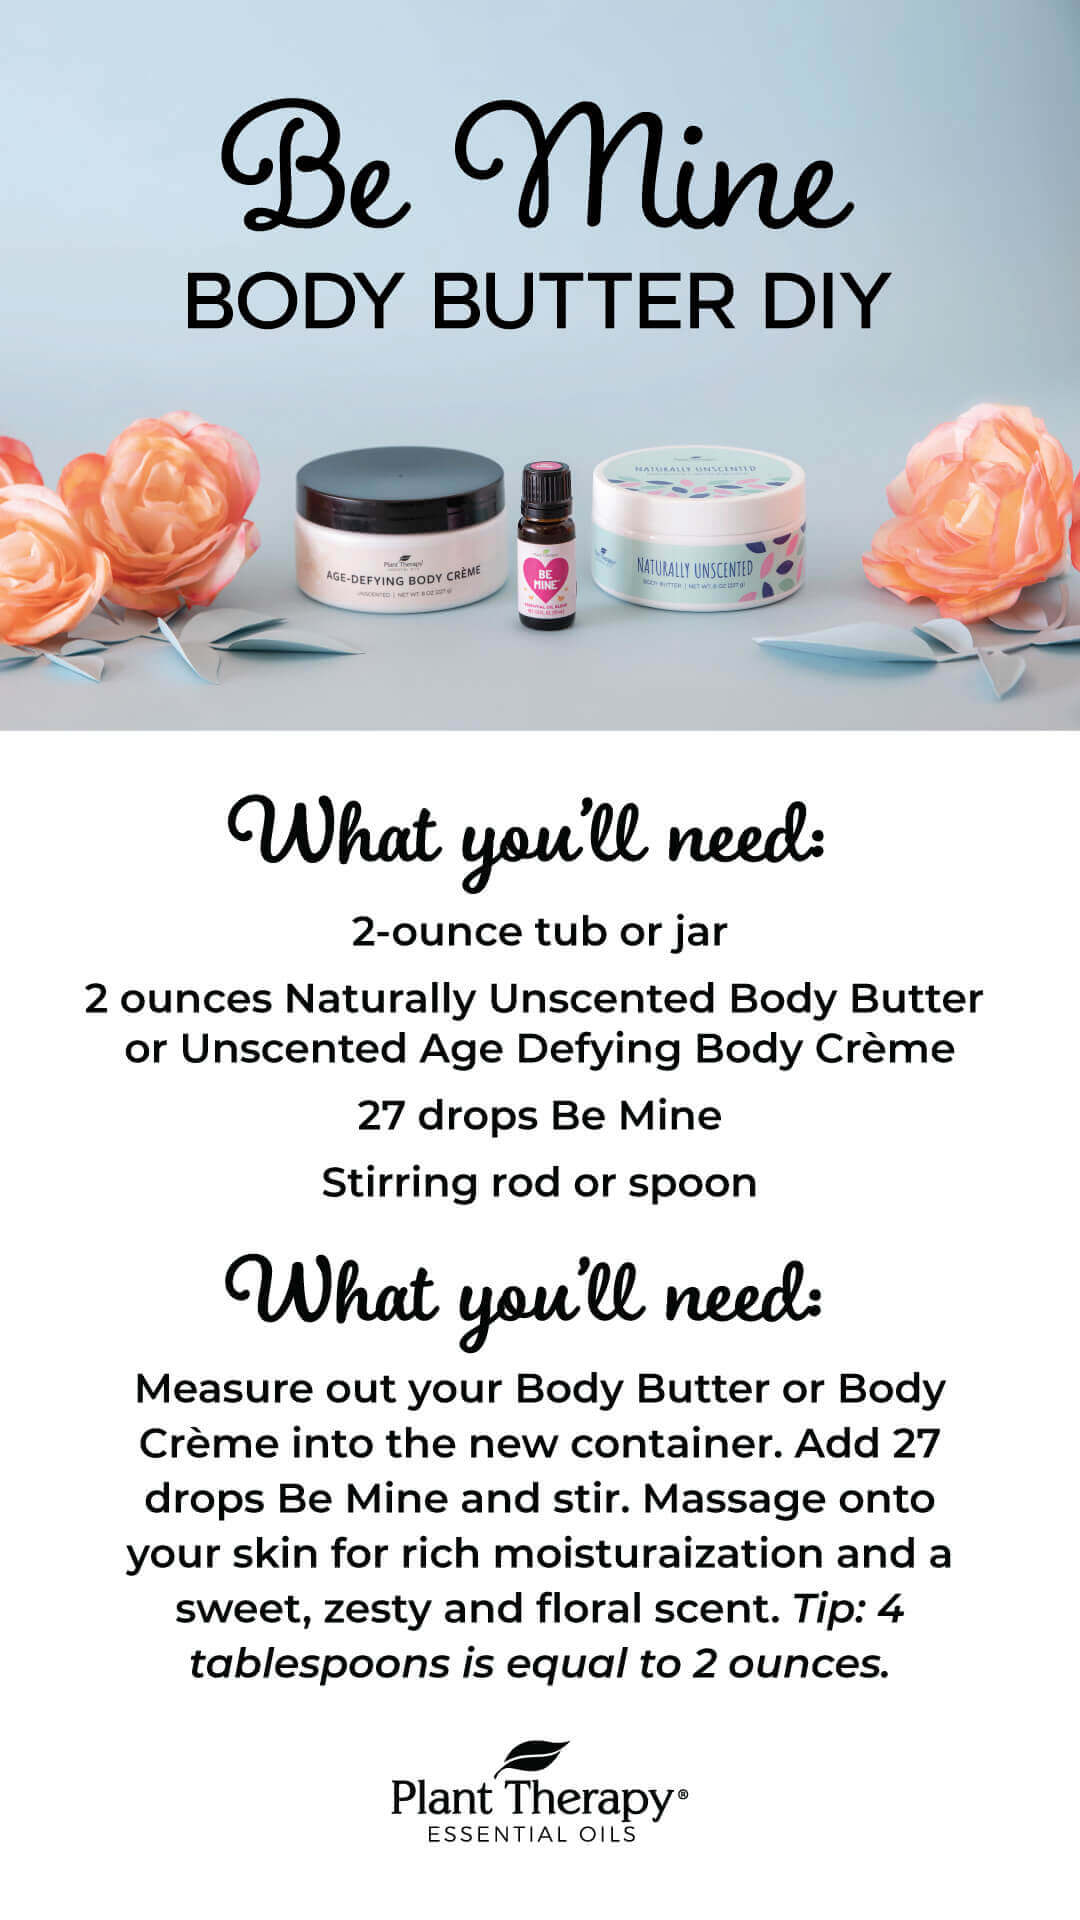 Plant Therapy Be Mine Body Butter DIY